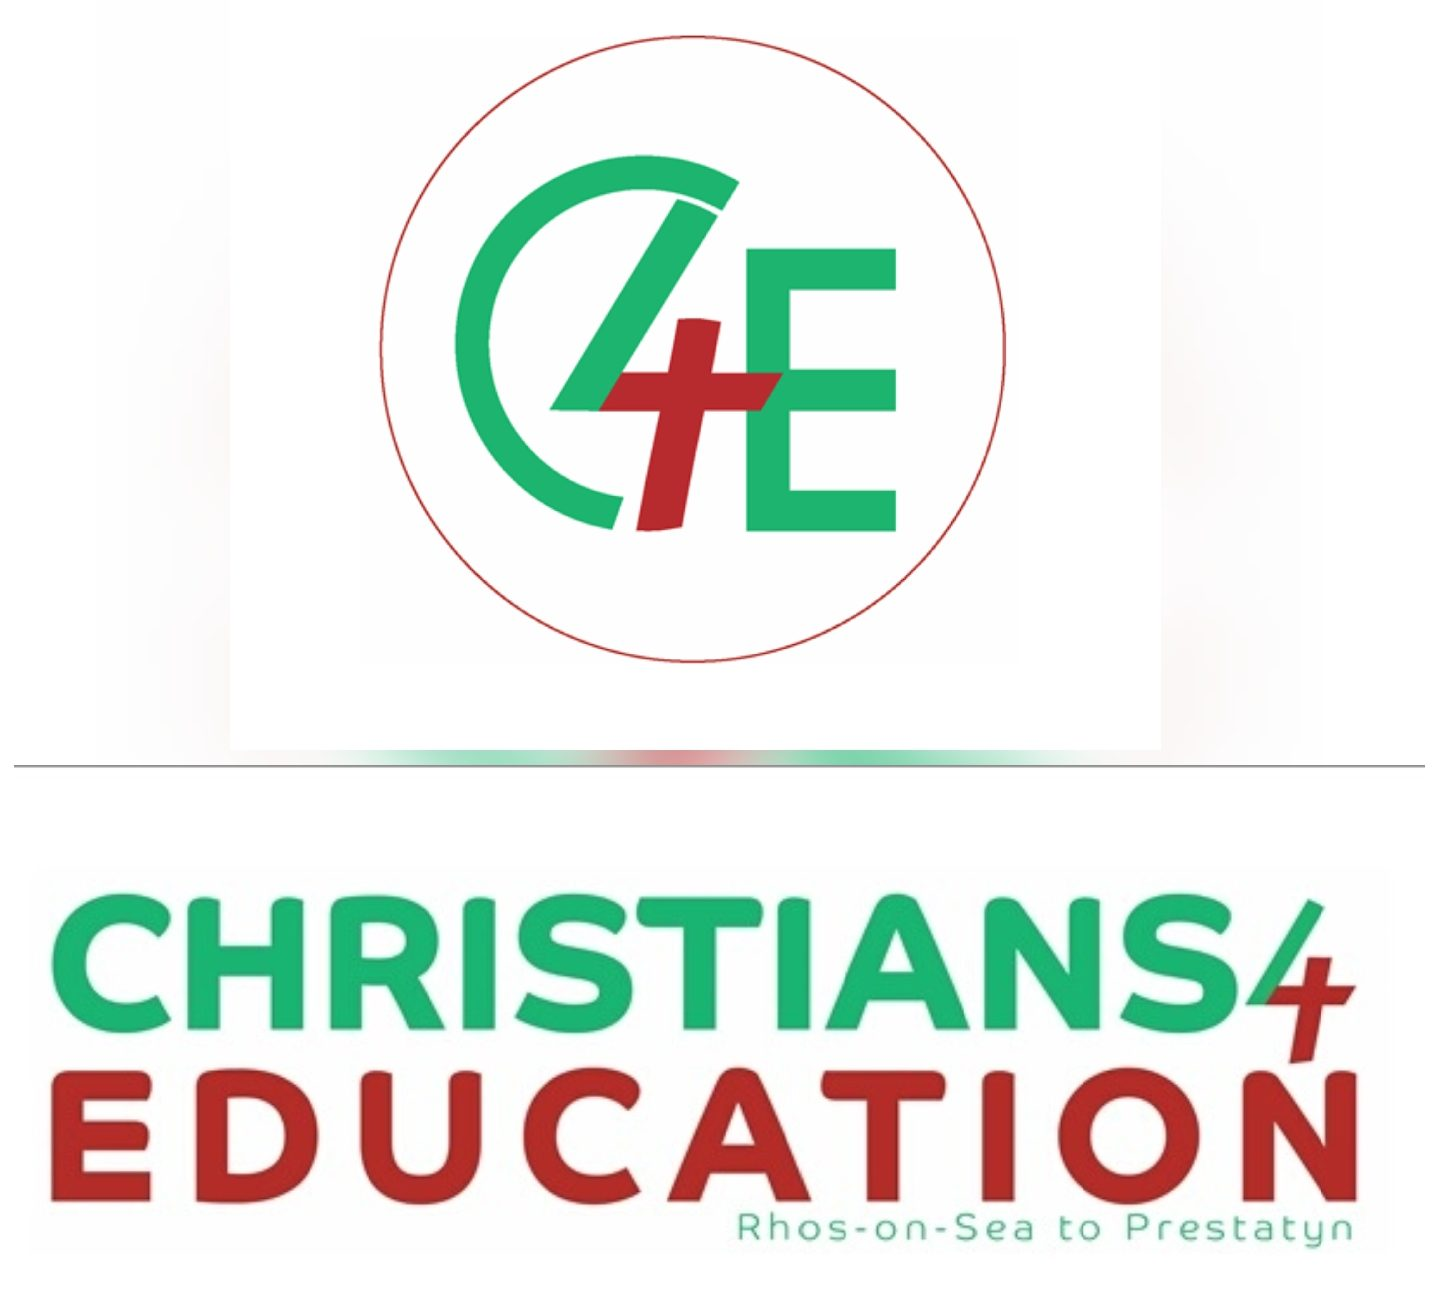 Christians For Education